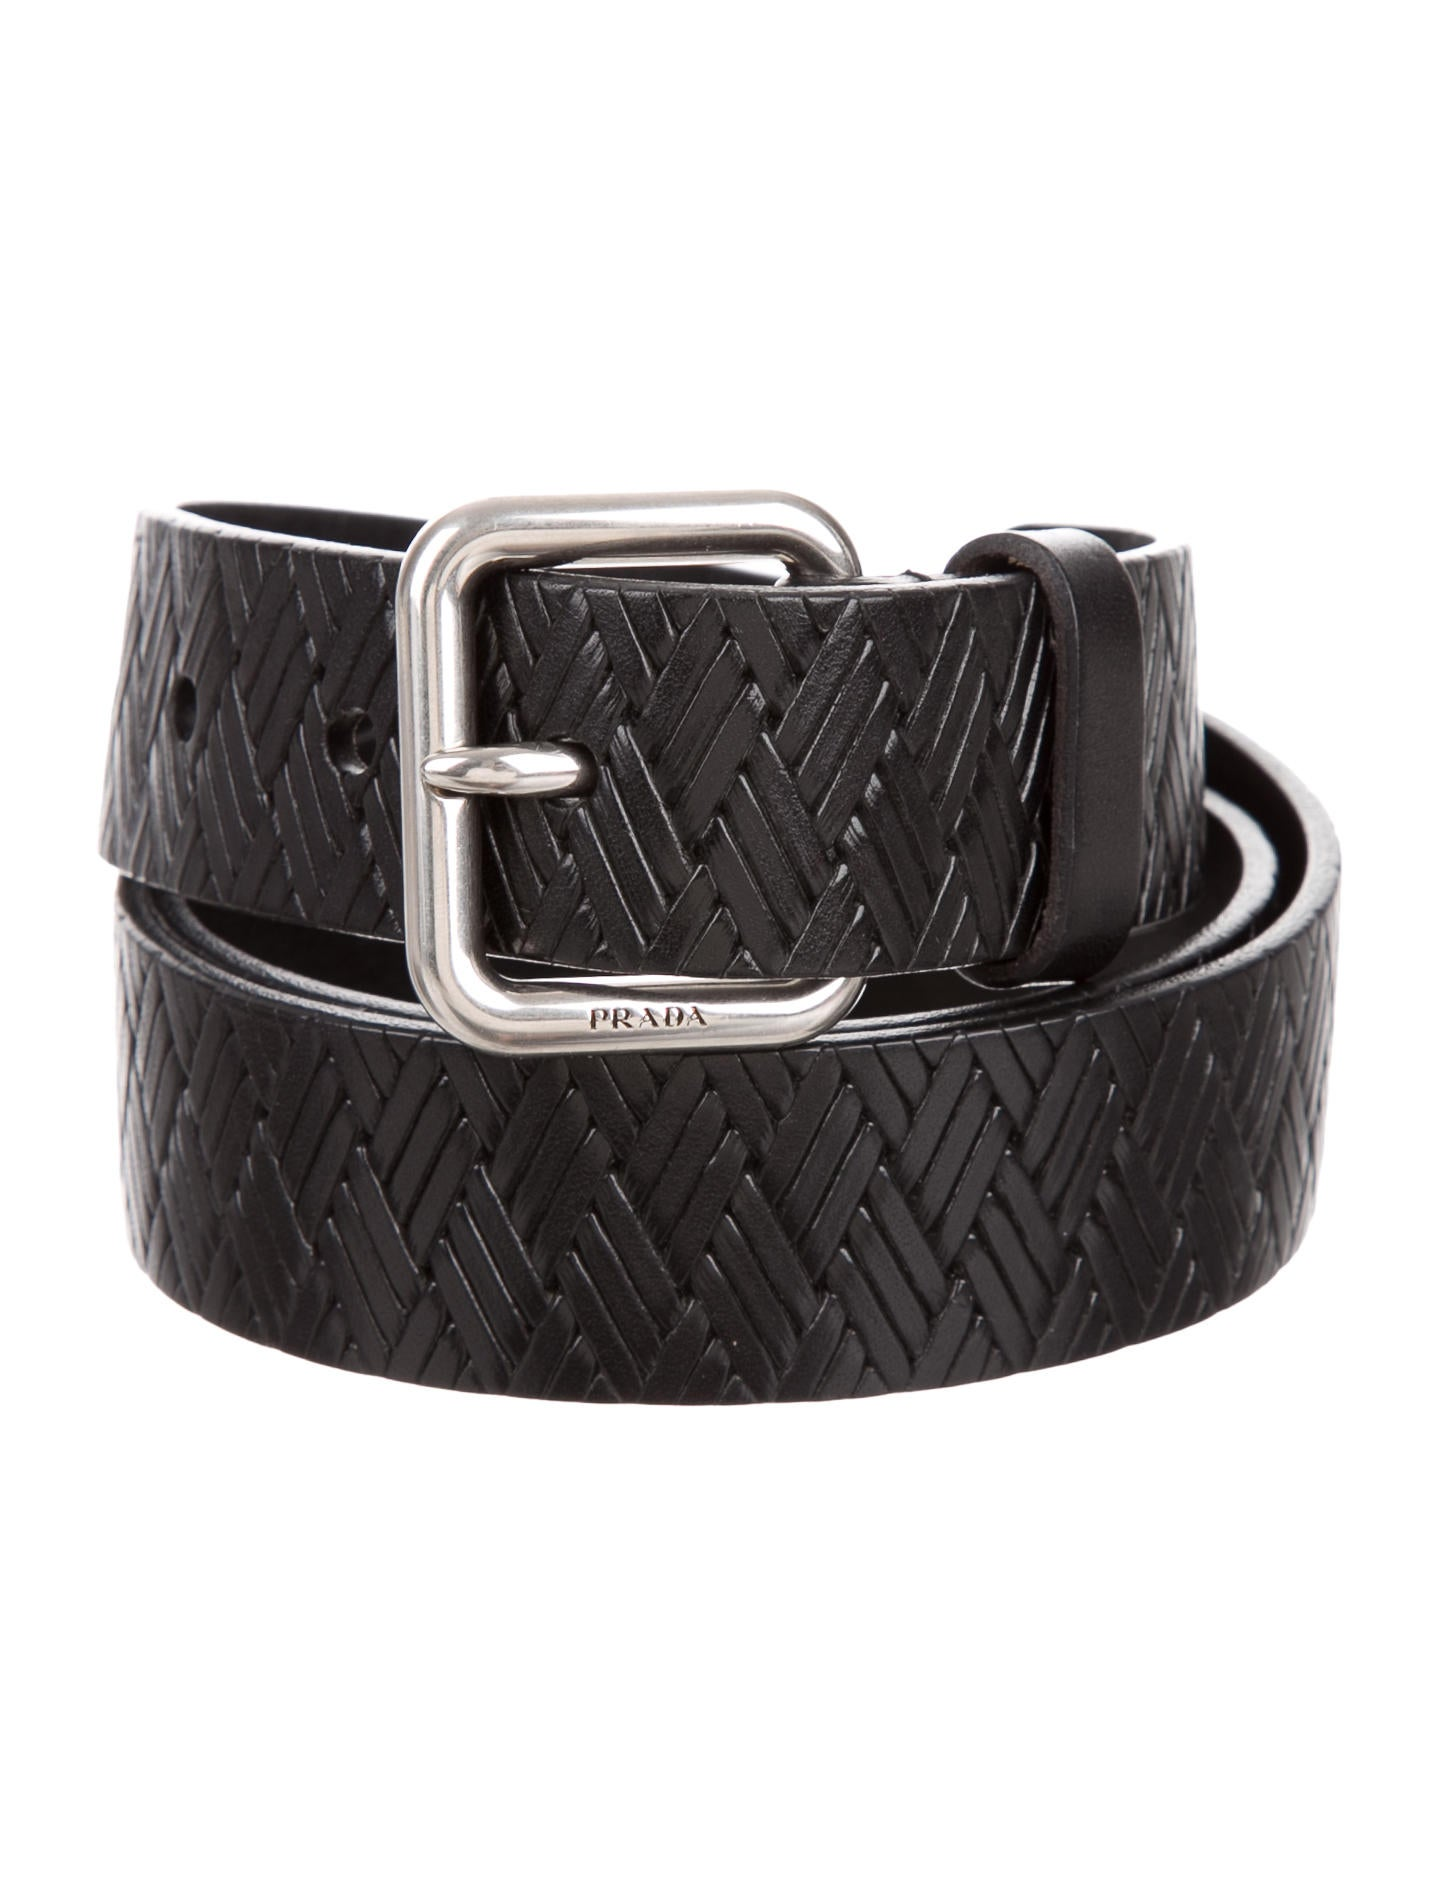 prada woven leather belt accessories pra141933 the